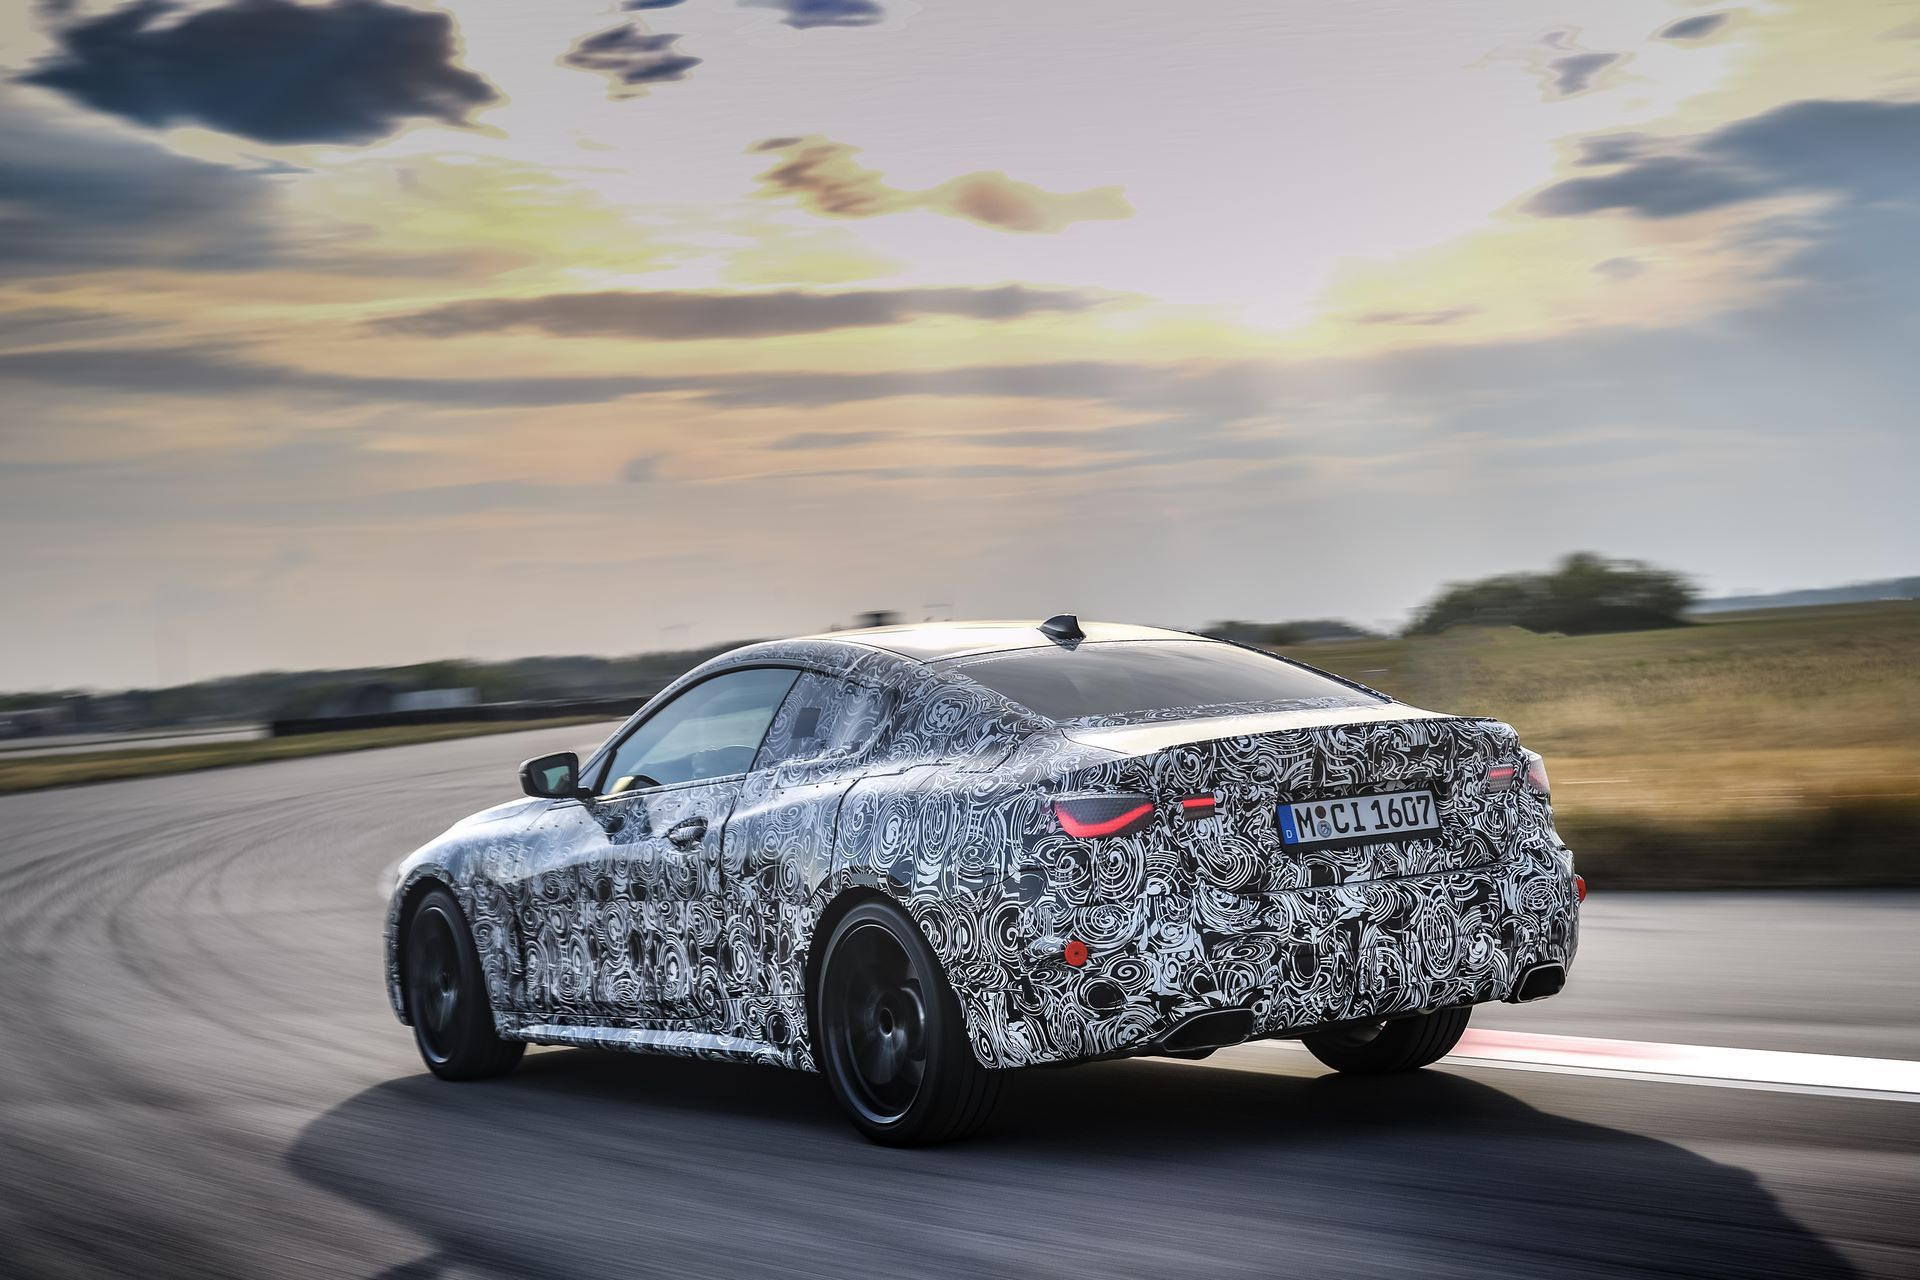 BMW-4-Series-M440i-camouflaged-15